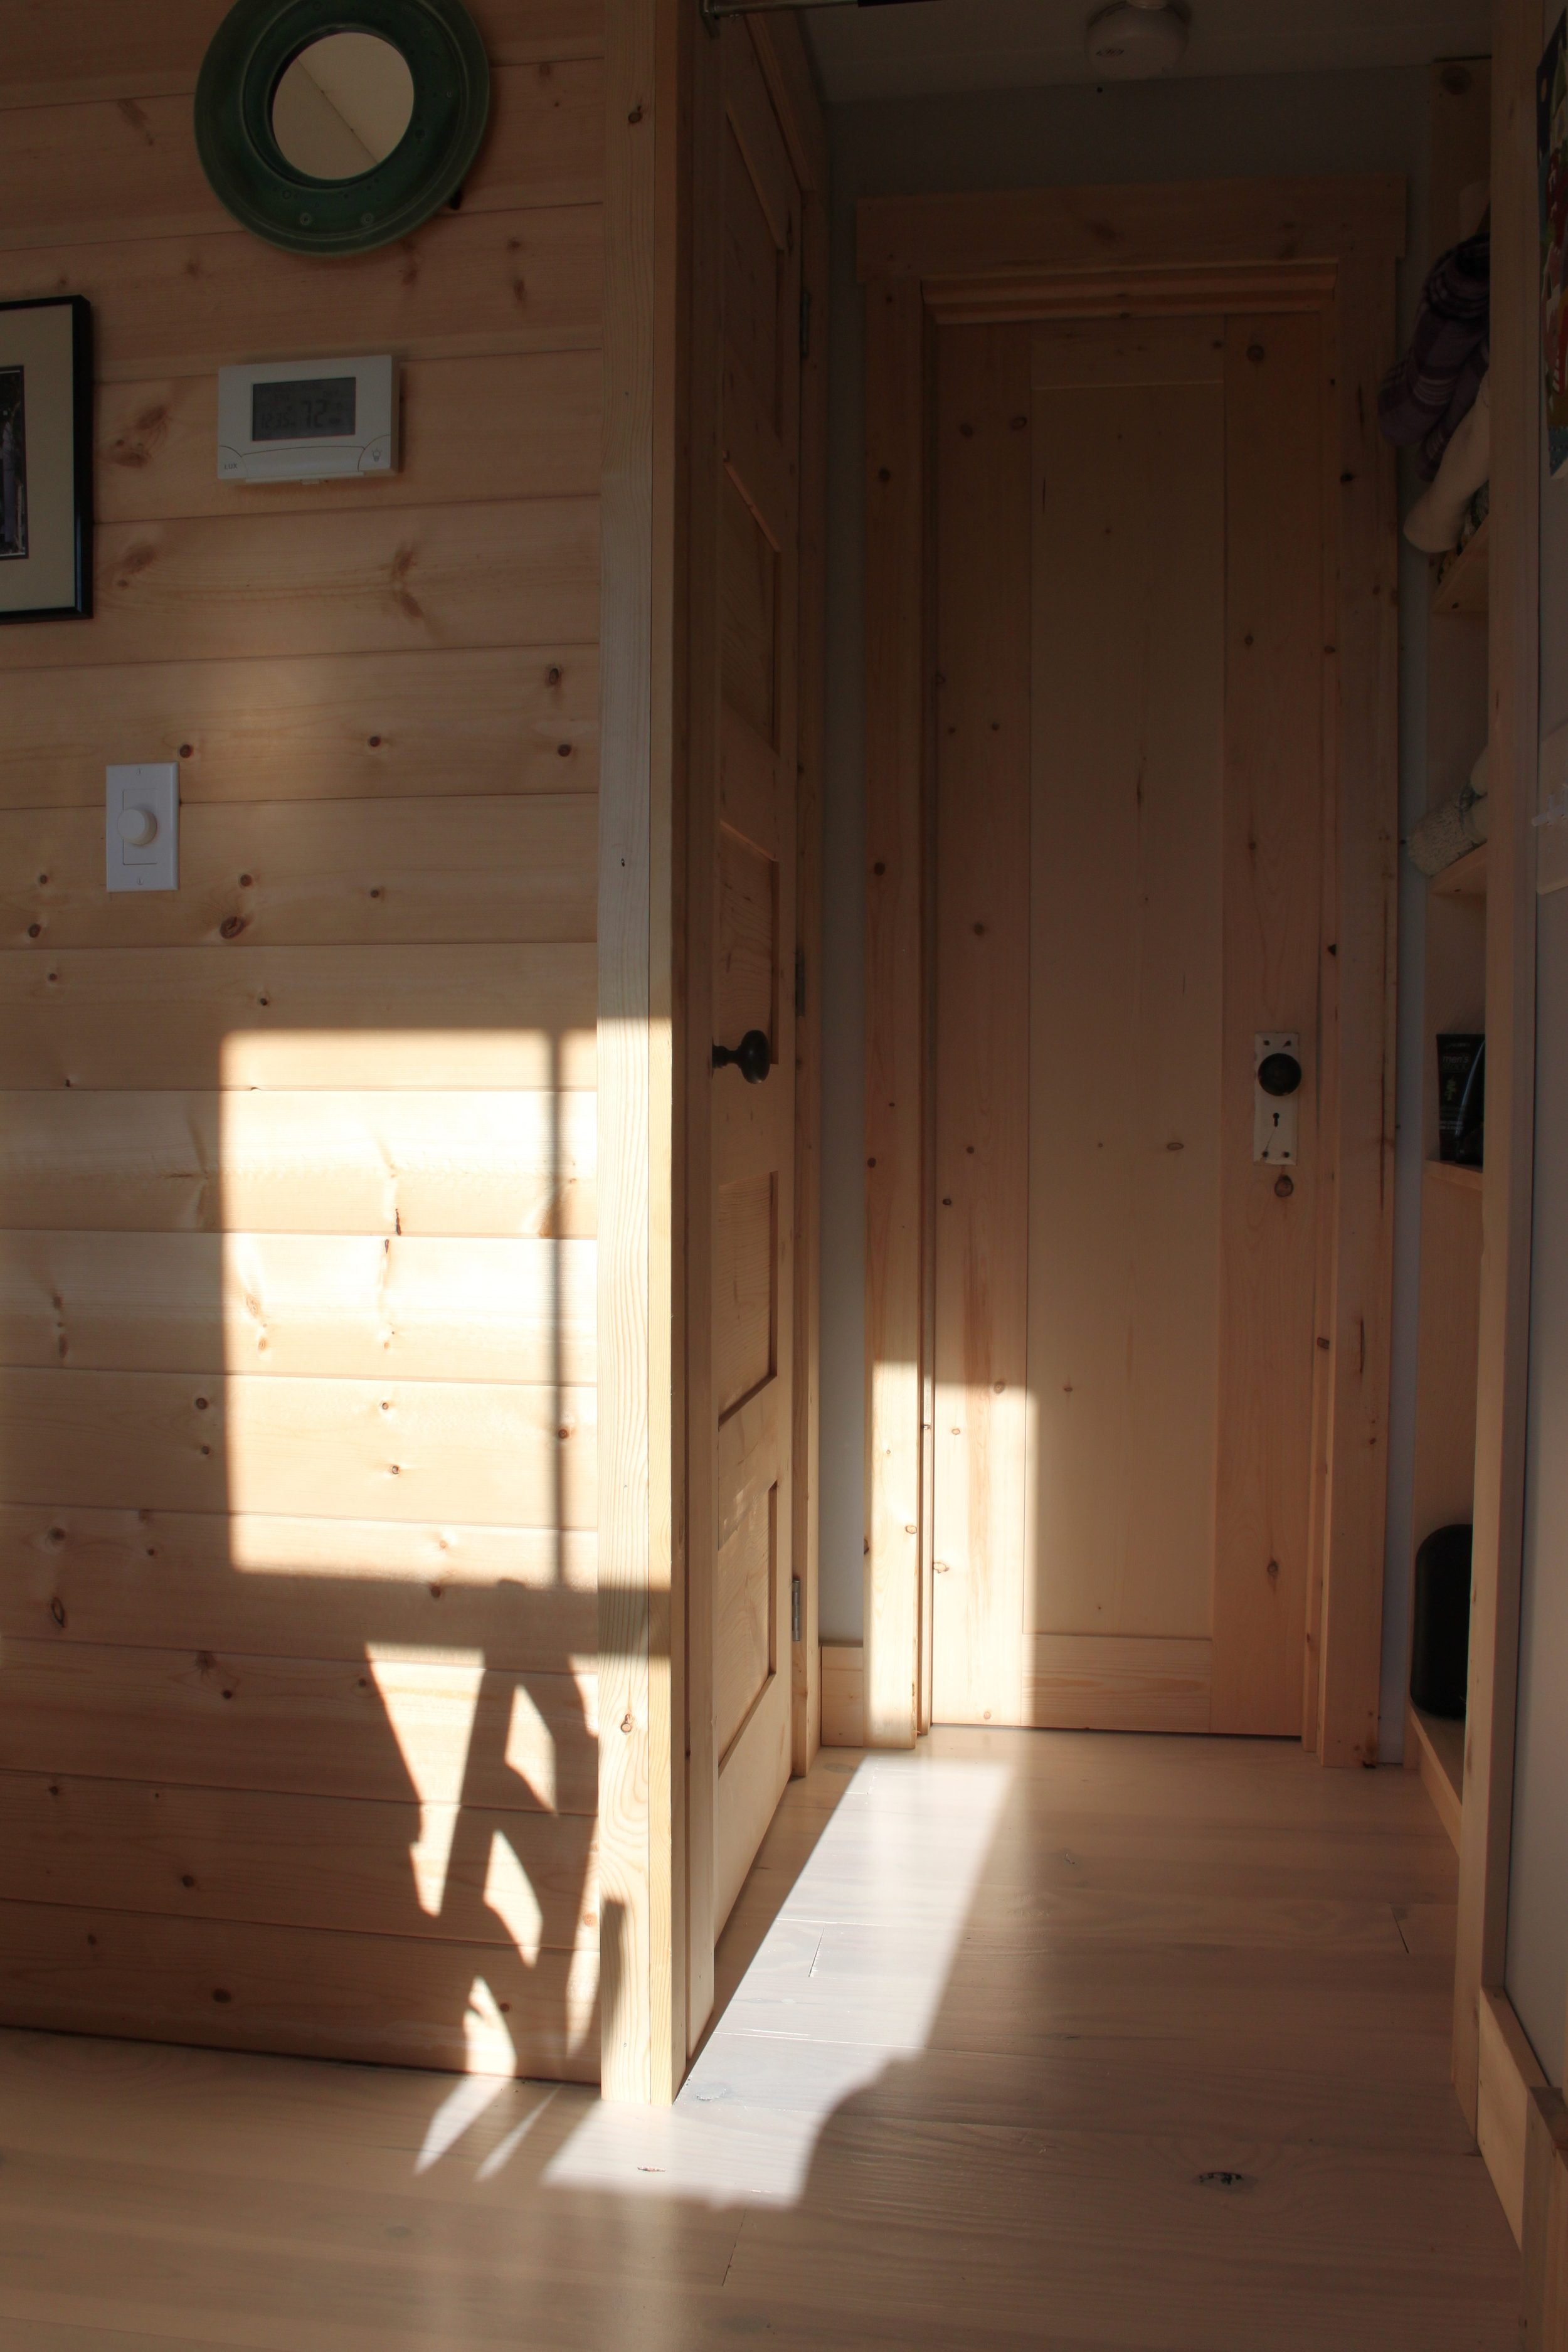 Hand made doors w/salvaged hardware: laundry room (left); bathroom (right) - unpainted.